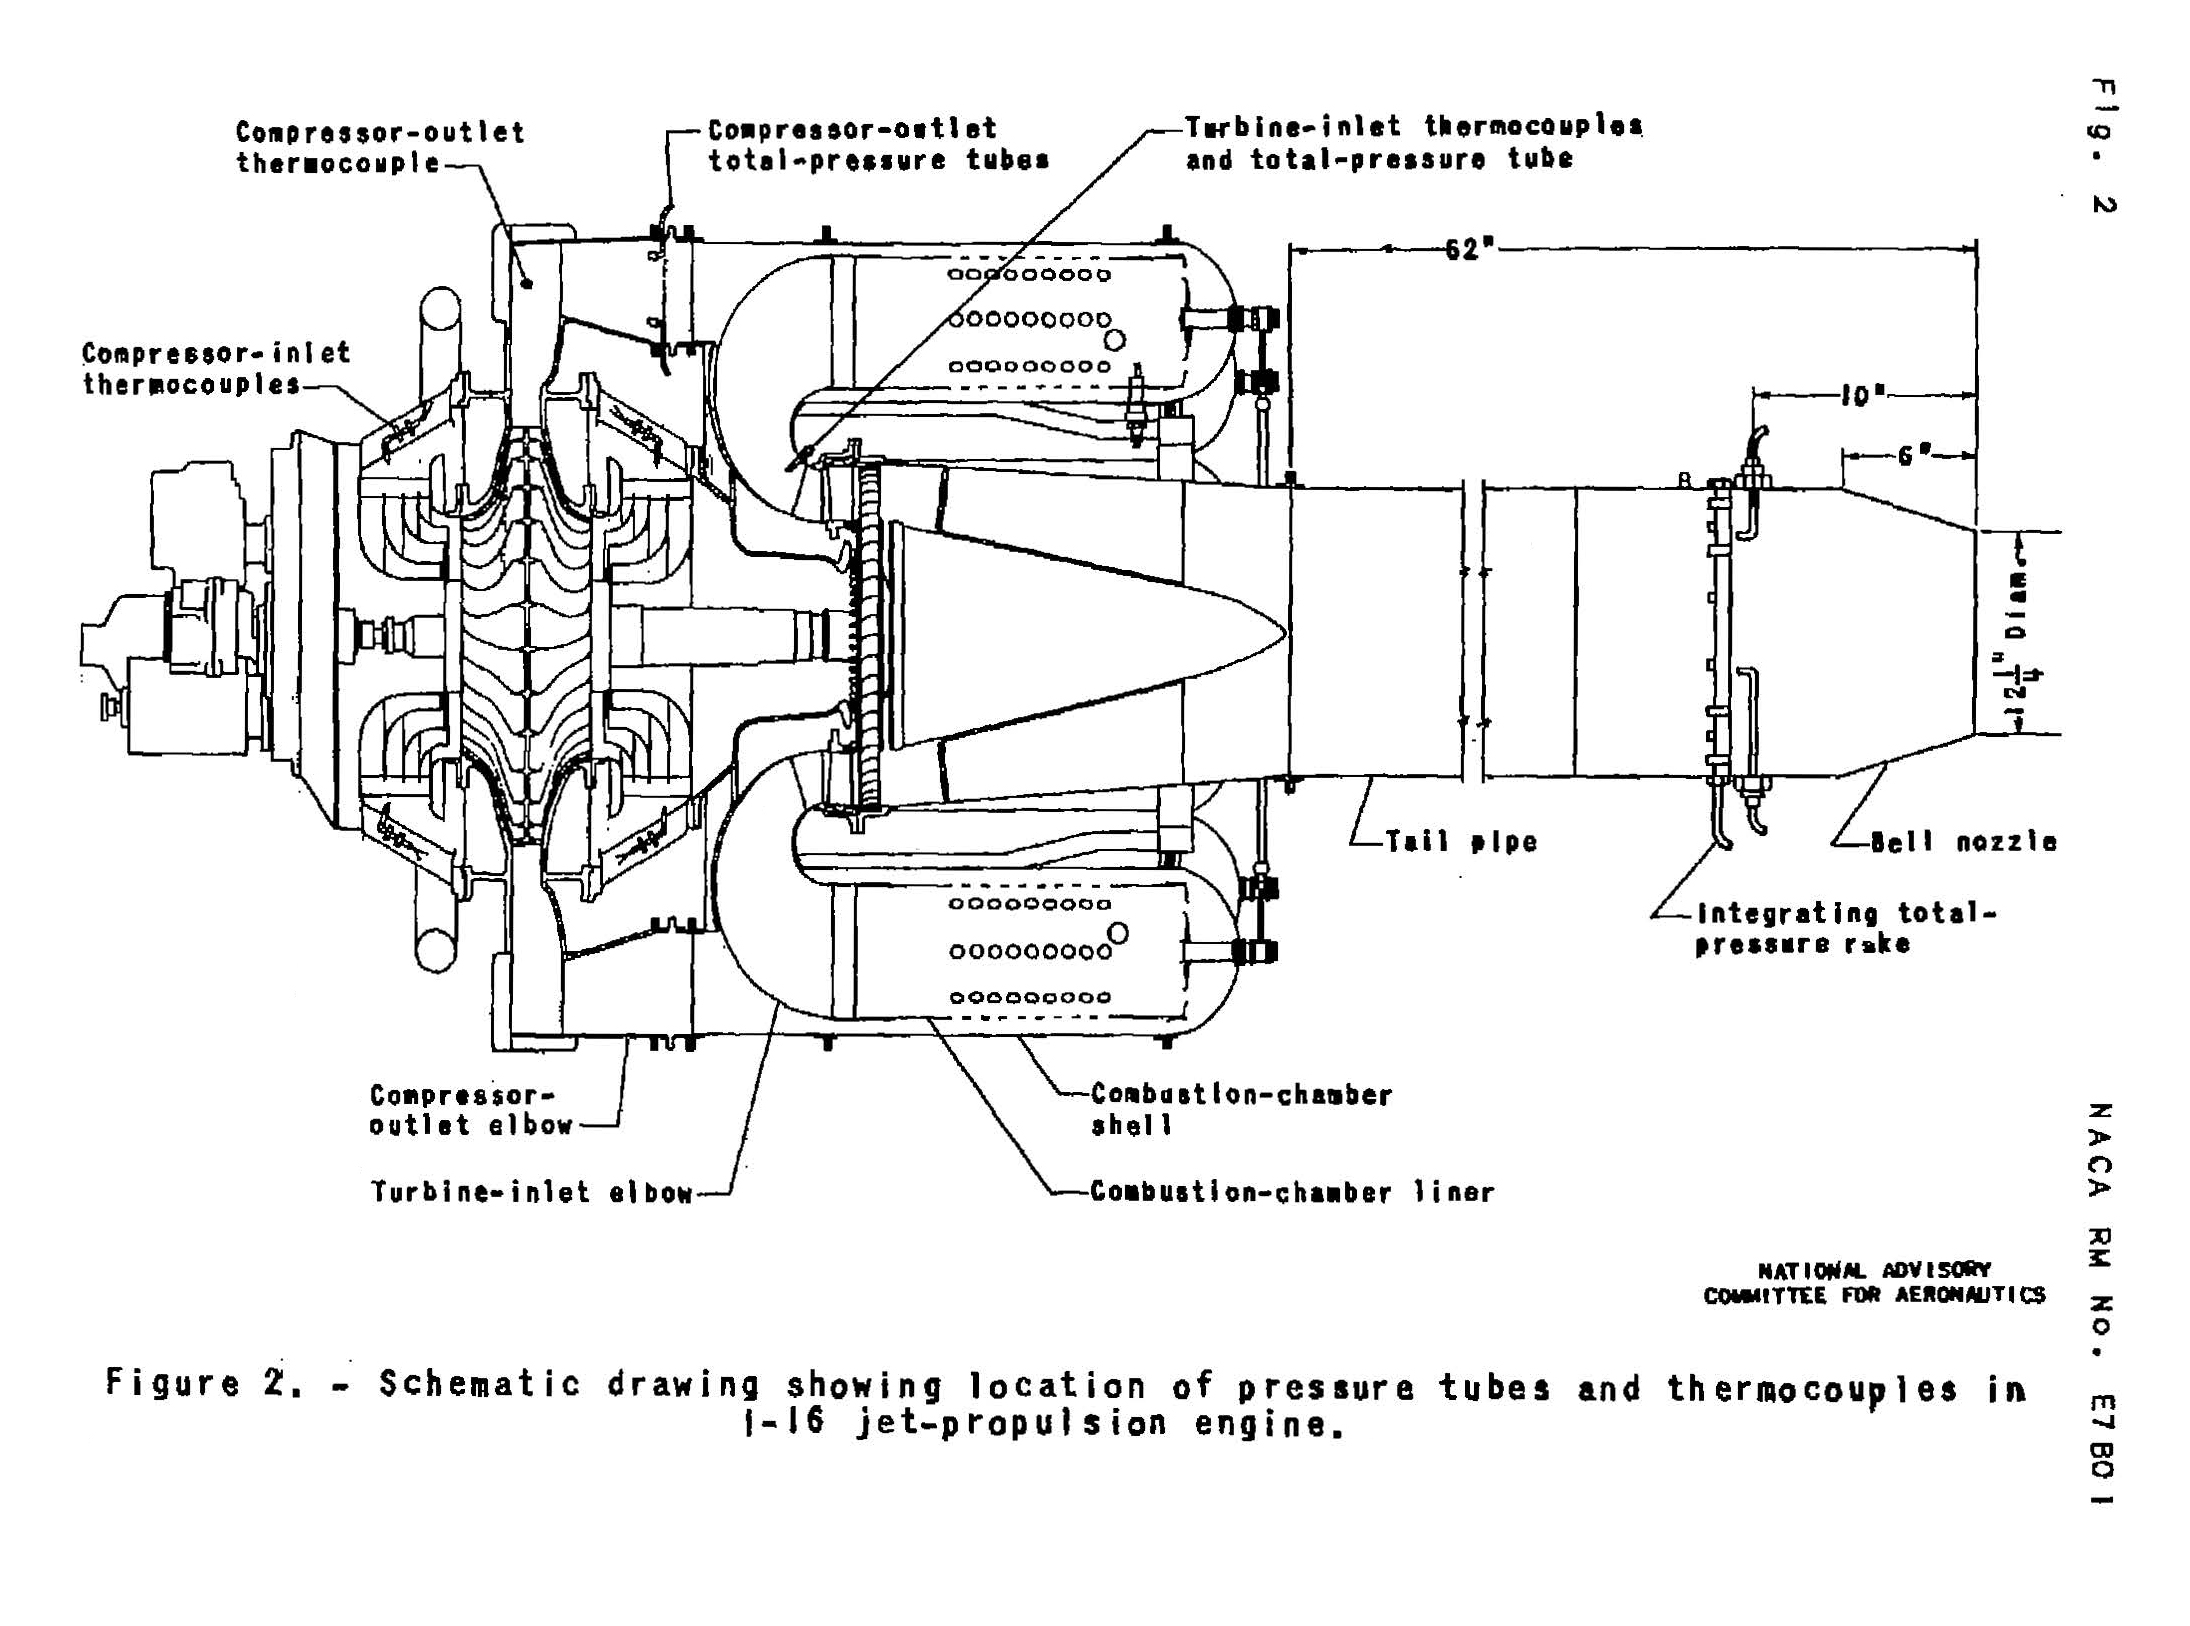 Early Jet Engines Nasa Glenn Research Center First Combustion Engine Diagram Naca Of The General Electric I 16 J 31